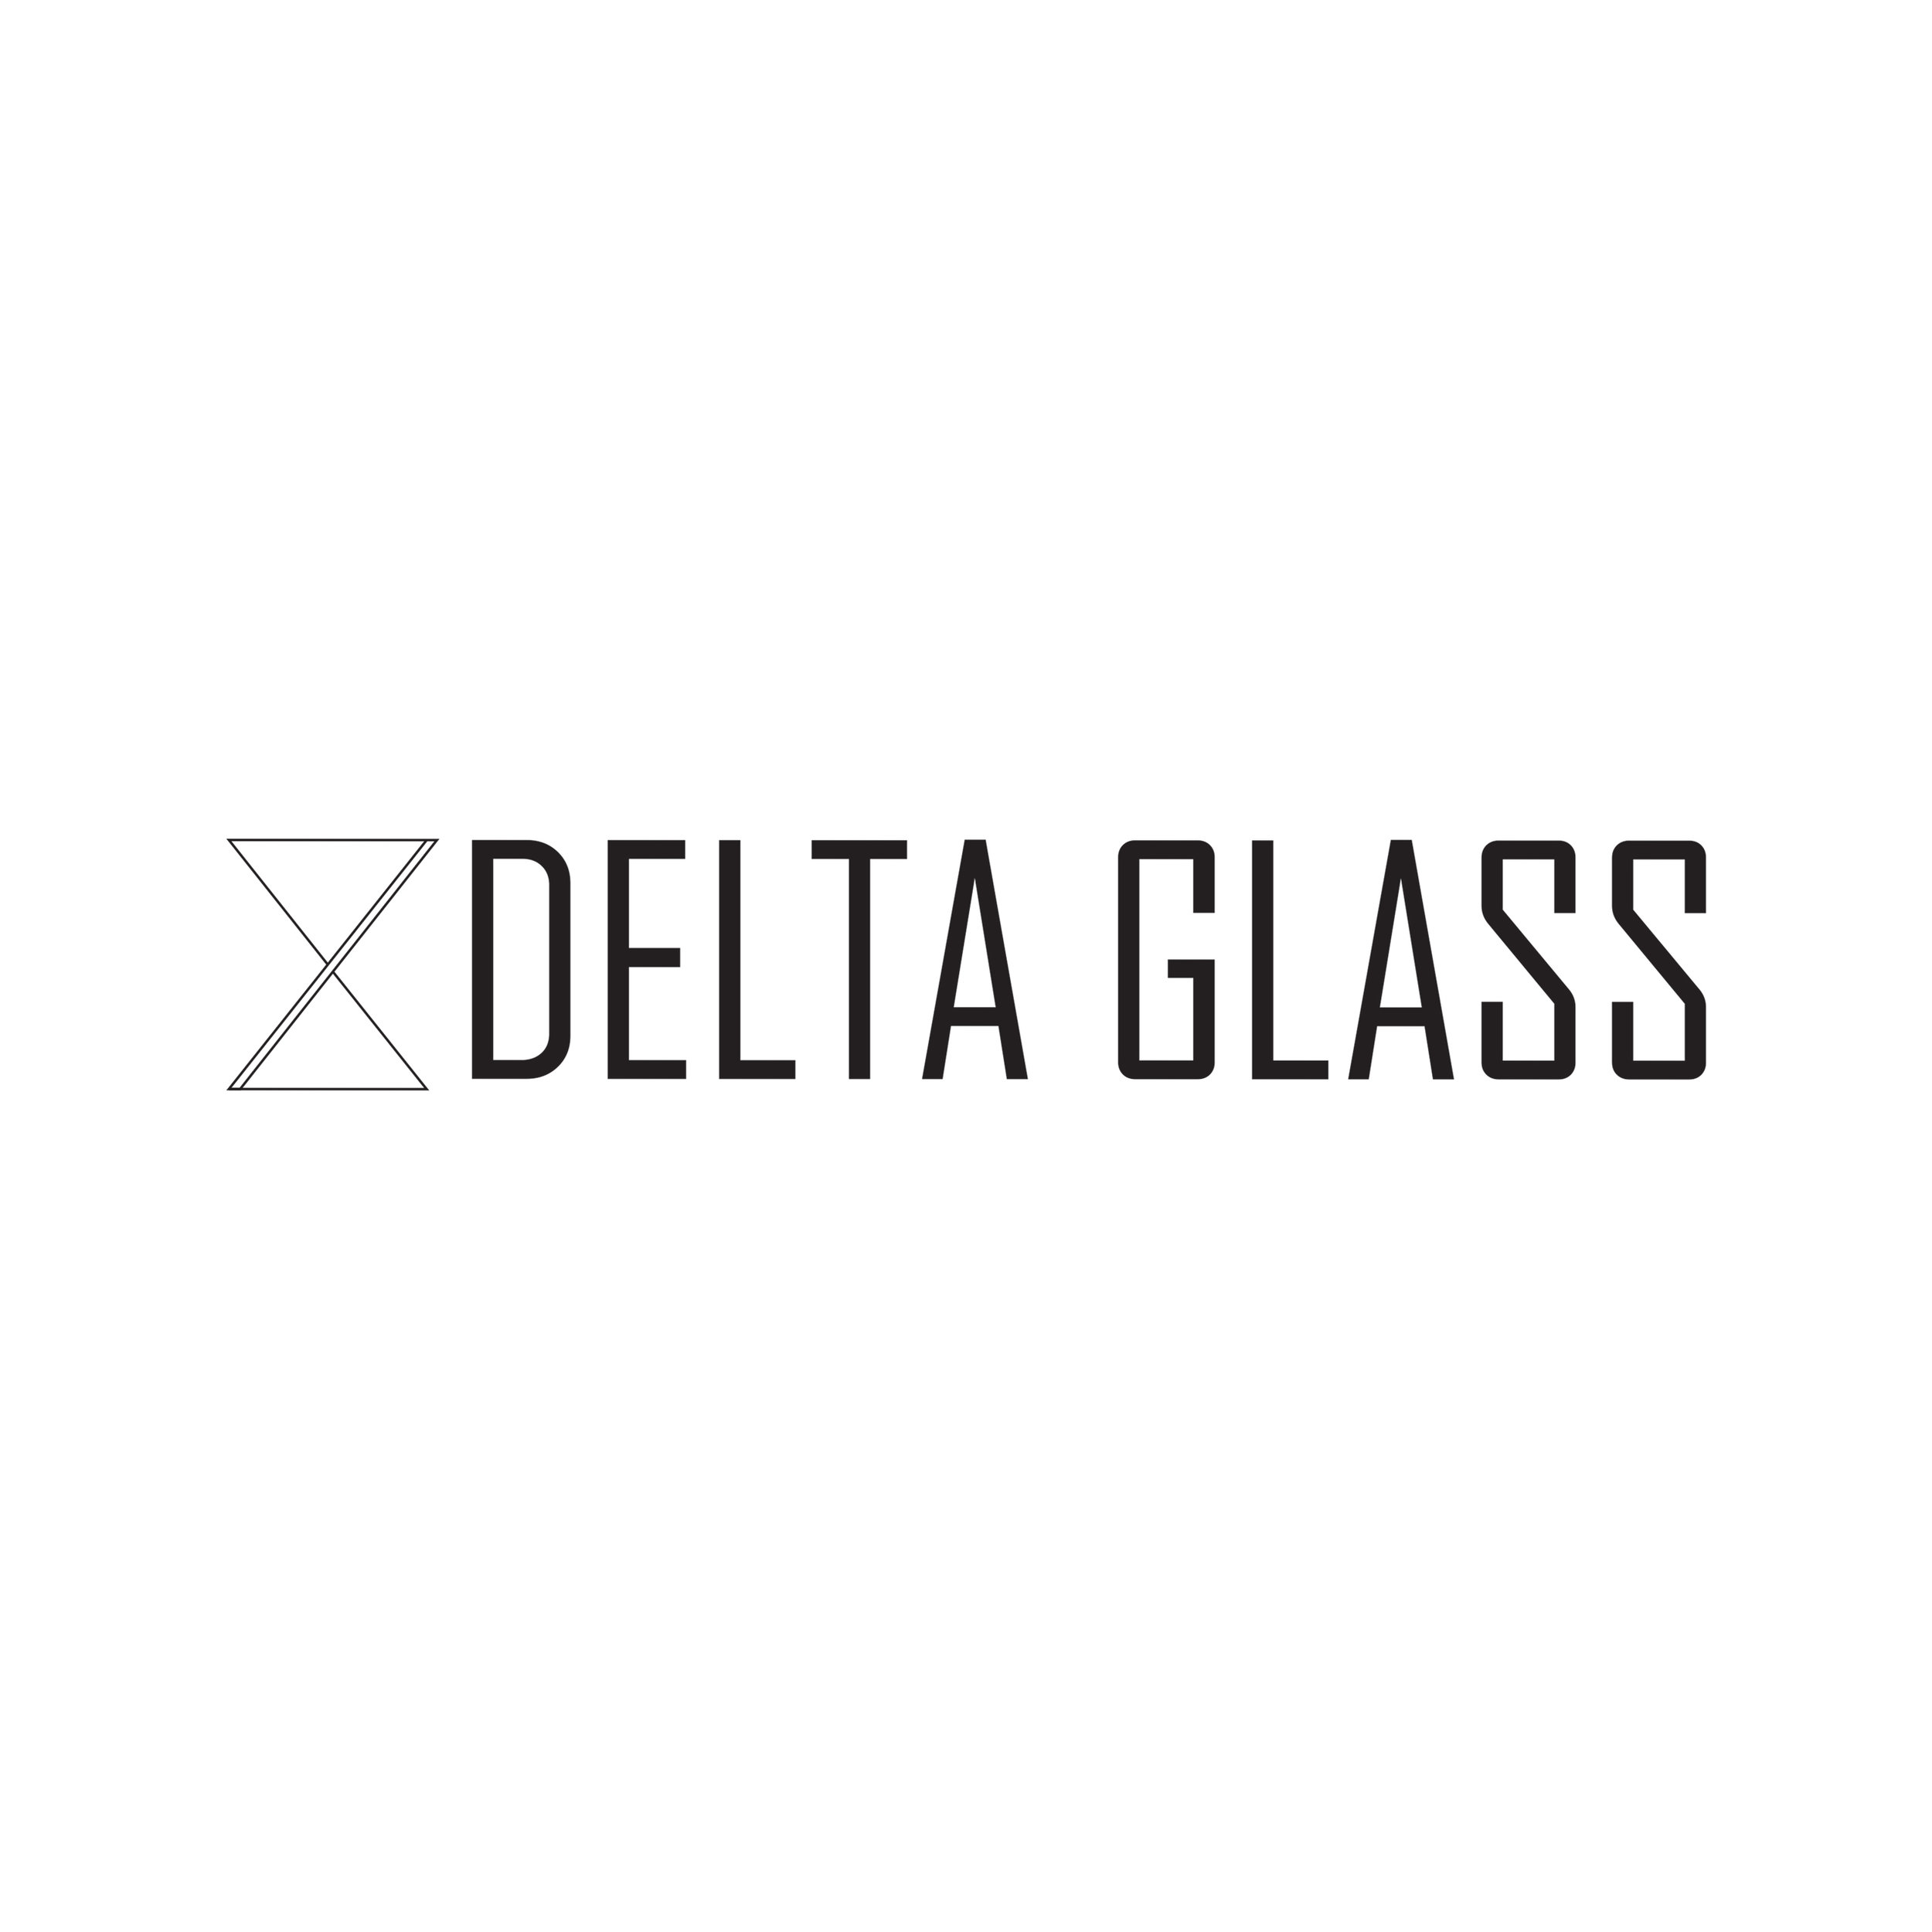 Delta Glass - Delta Glass is a productivity timer that utilizes the pomodoro technique to reduce procrastination. It functions like an hourglass and has lights and sensors that make doing work easy and simple.